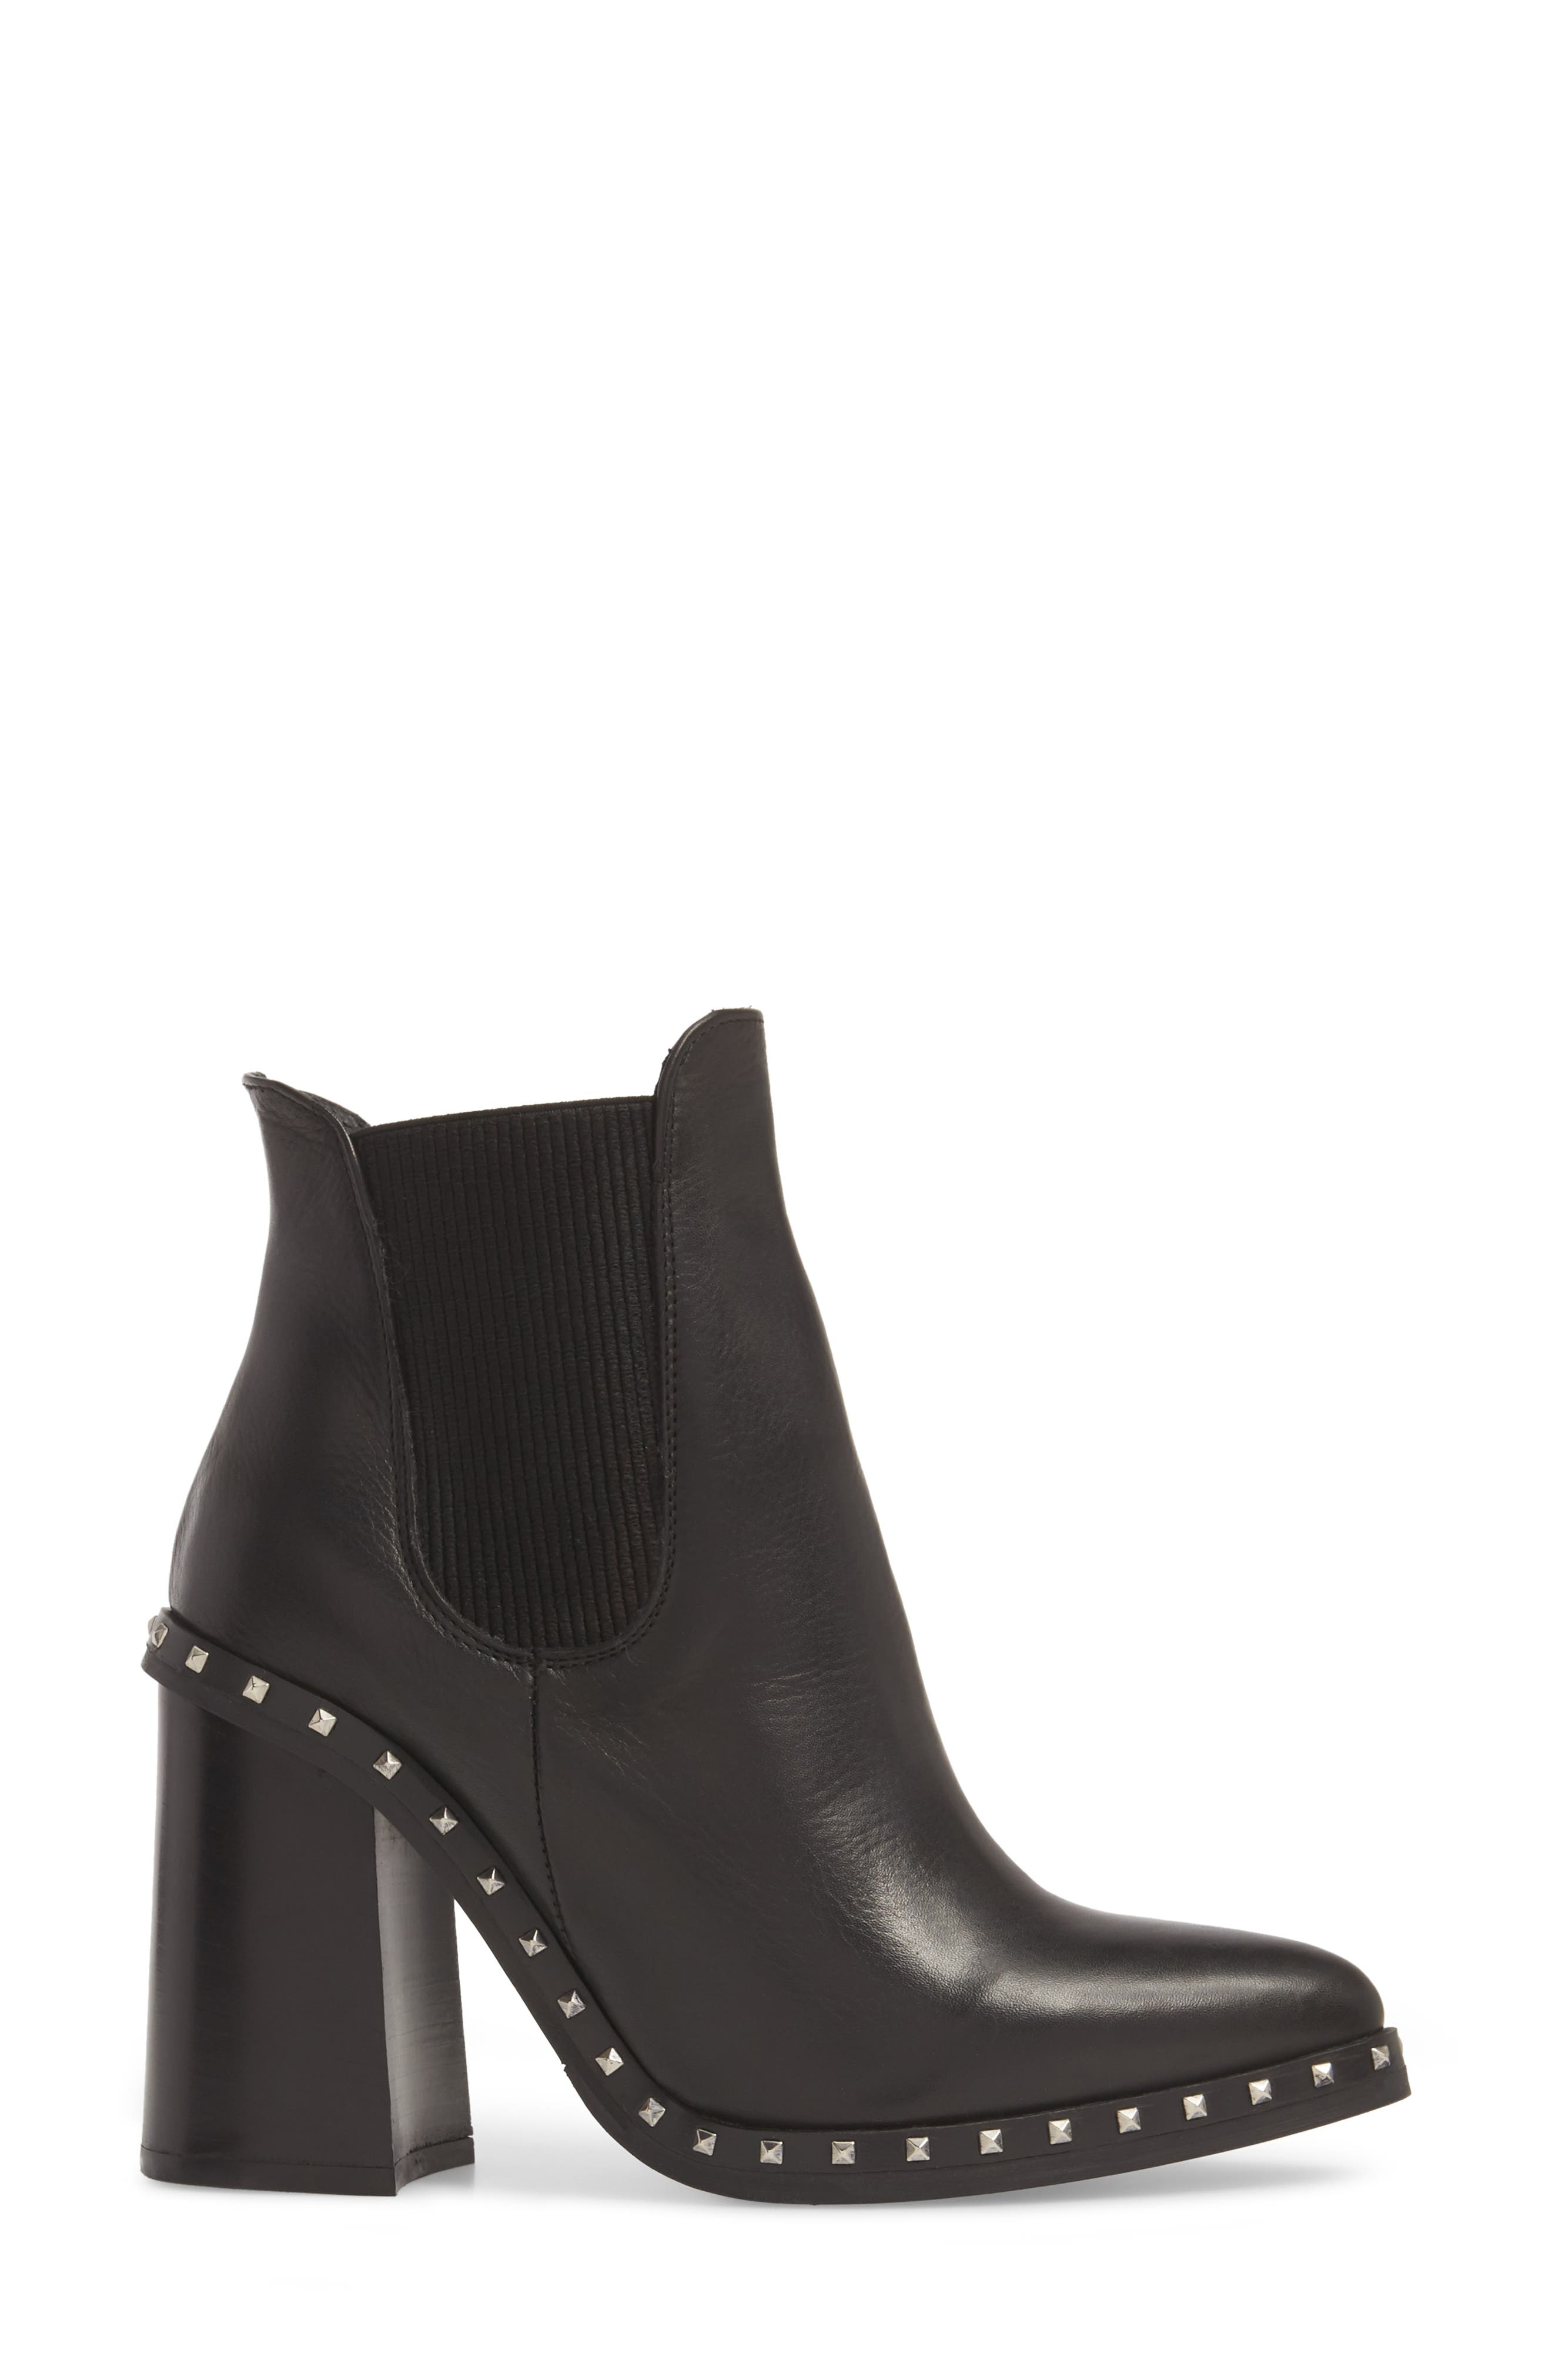 Scandal Studded Chelsea Bootie,                             Alternate thumbnail 3, color,                             001